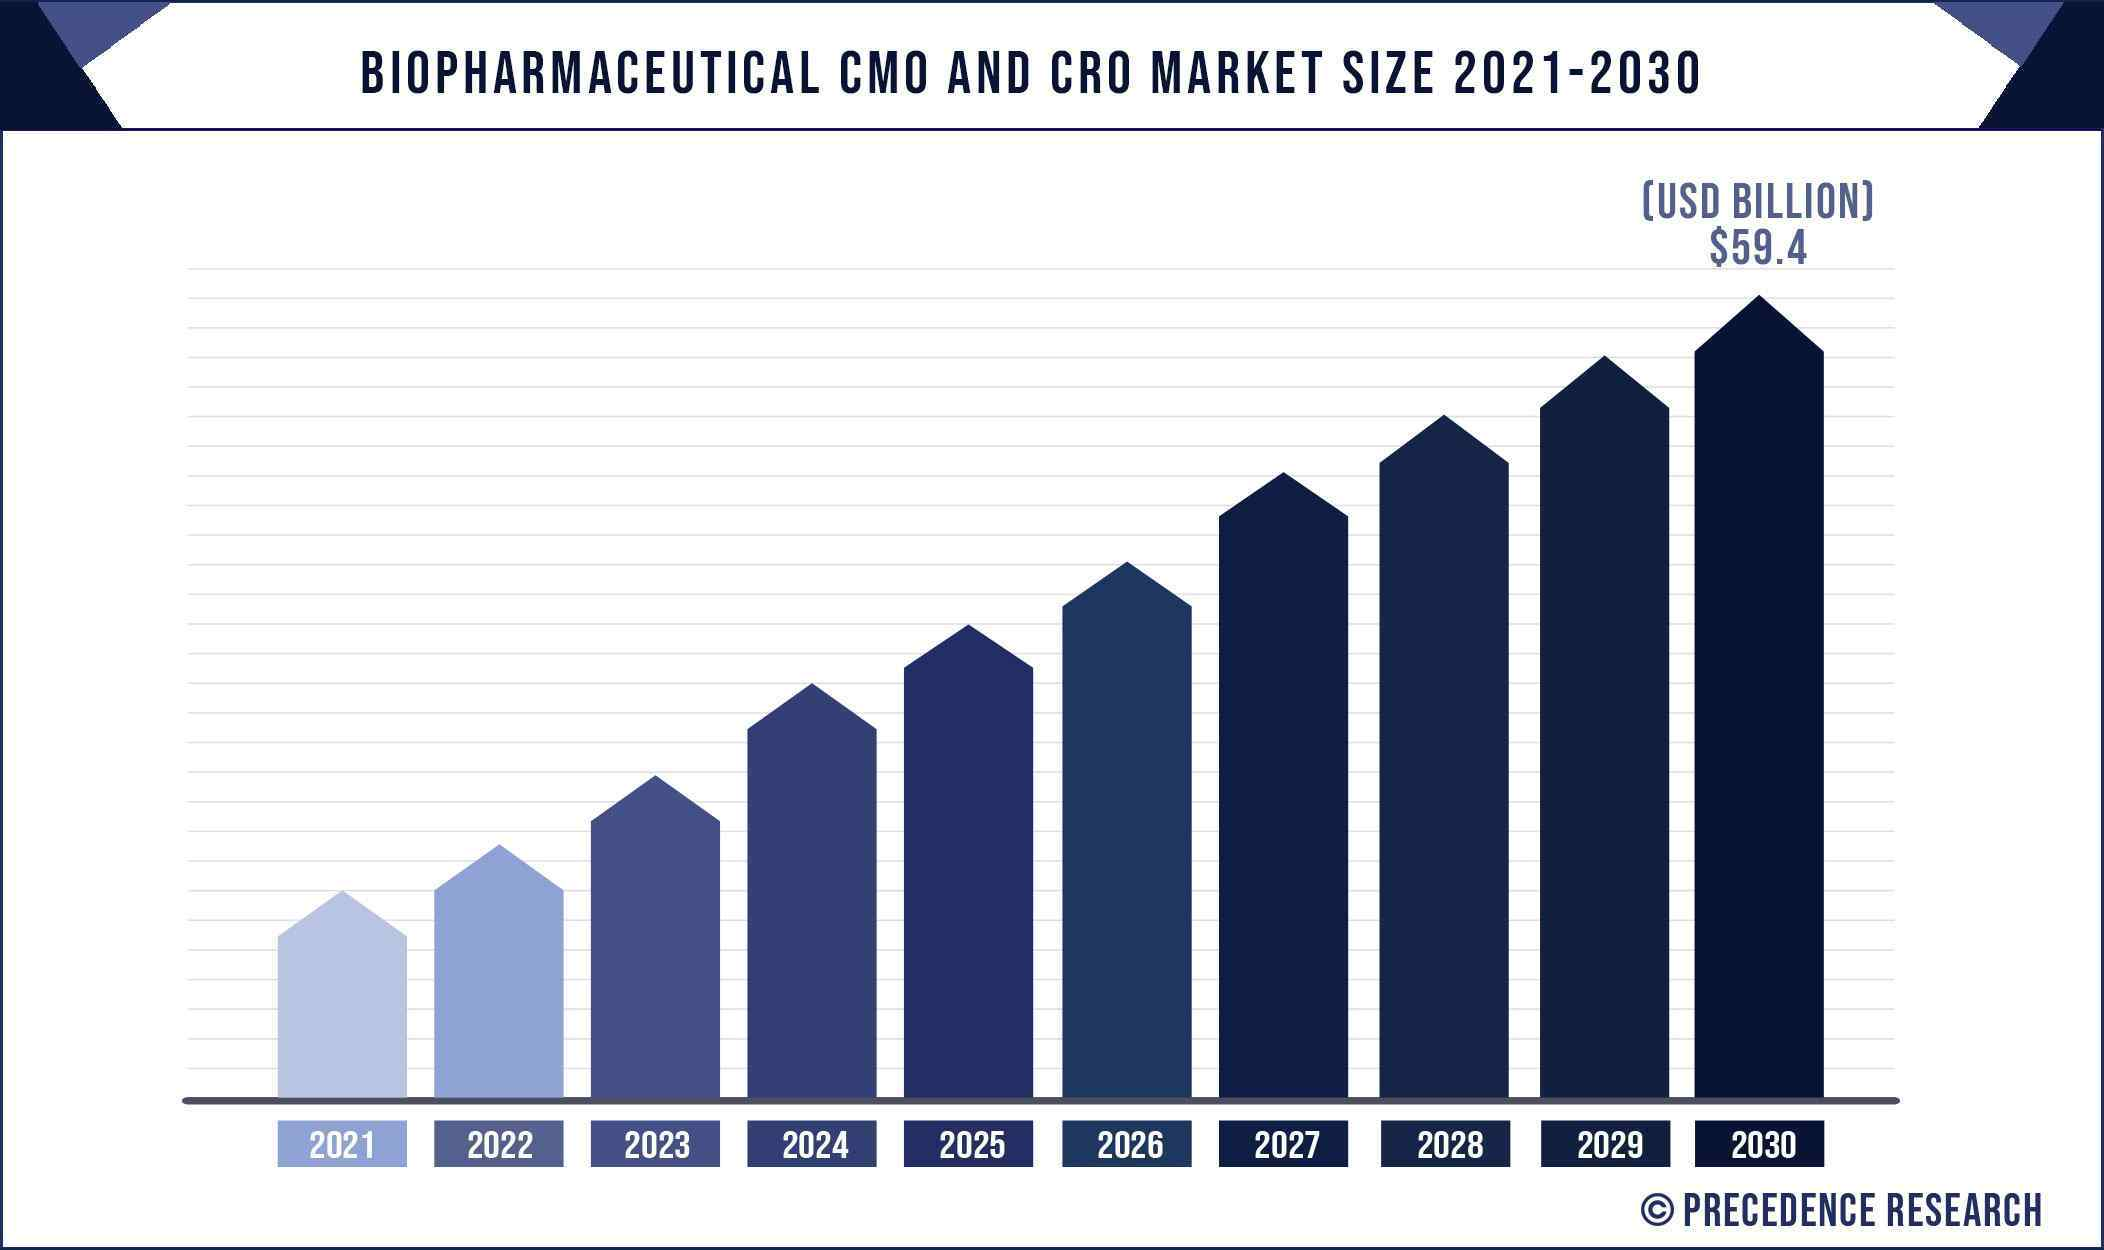 Biopharmaceutical CMO and CRO Market Size 2021 to 2030